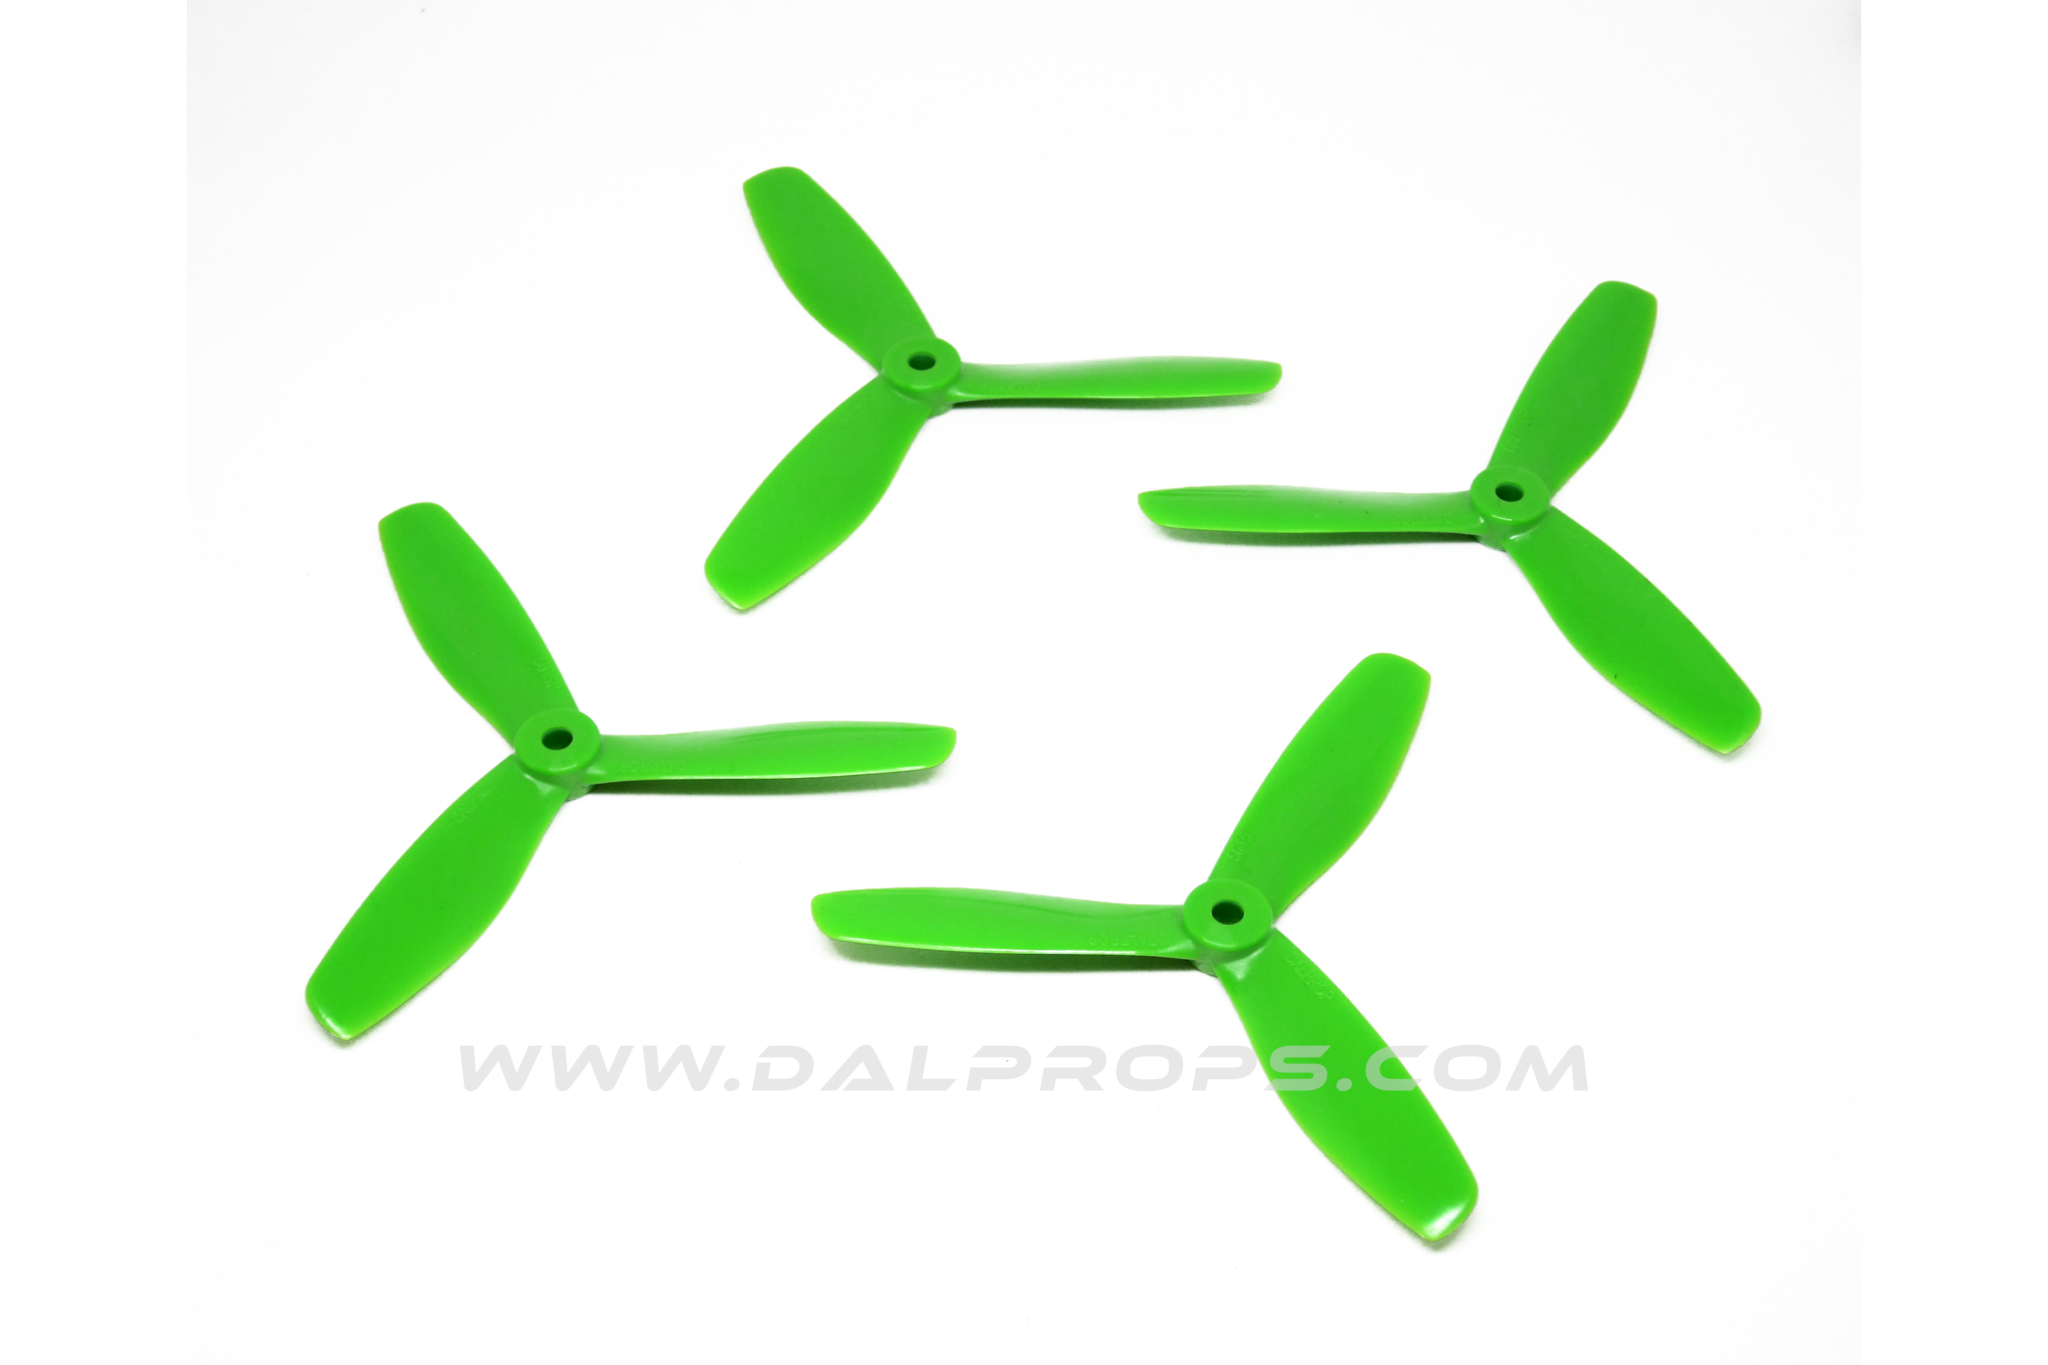 DAL &quot;Indestructible&quot; 5045 Tri-Blade V2 - <font color=&quot;green&quot;><b>GREEN</b></font> - SNHE